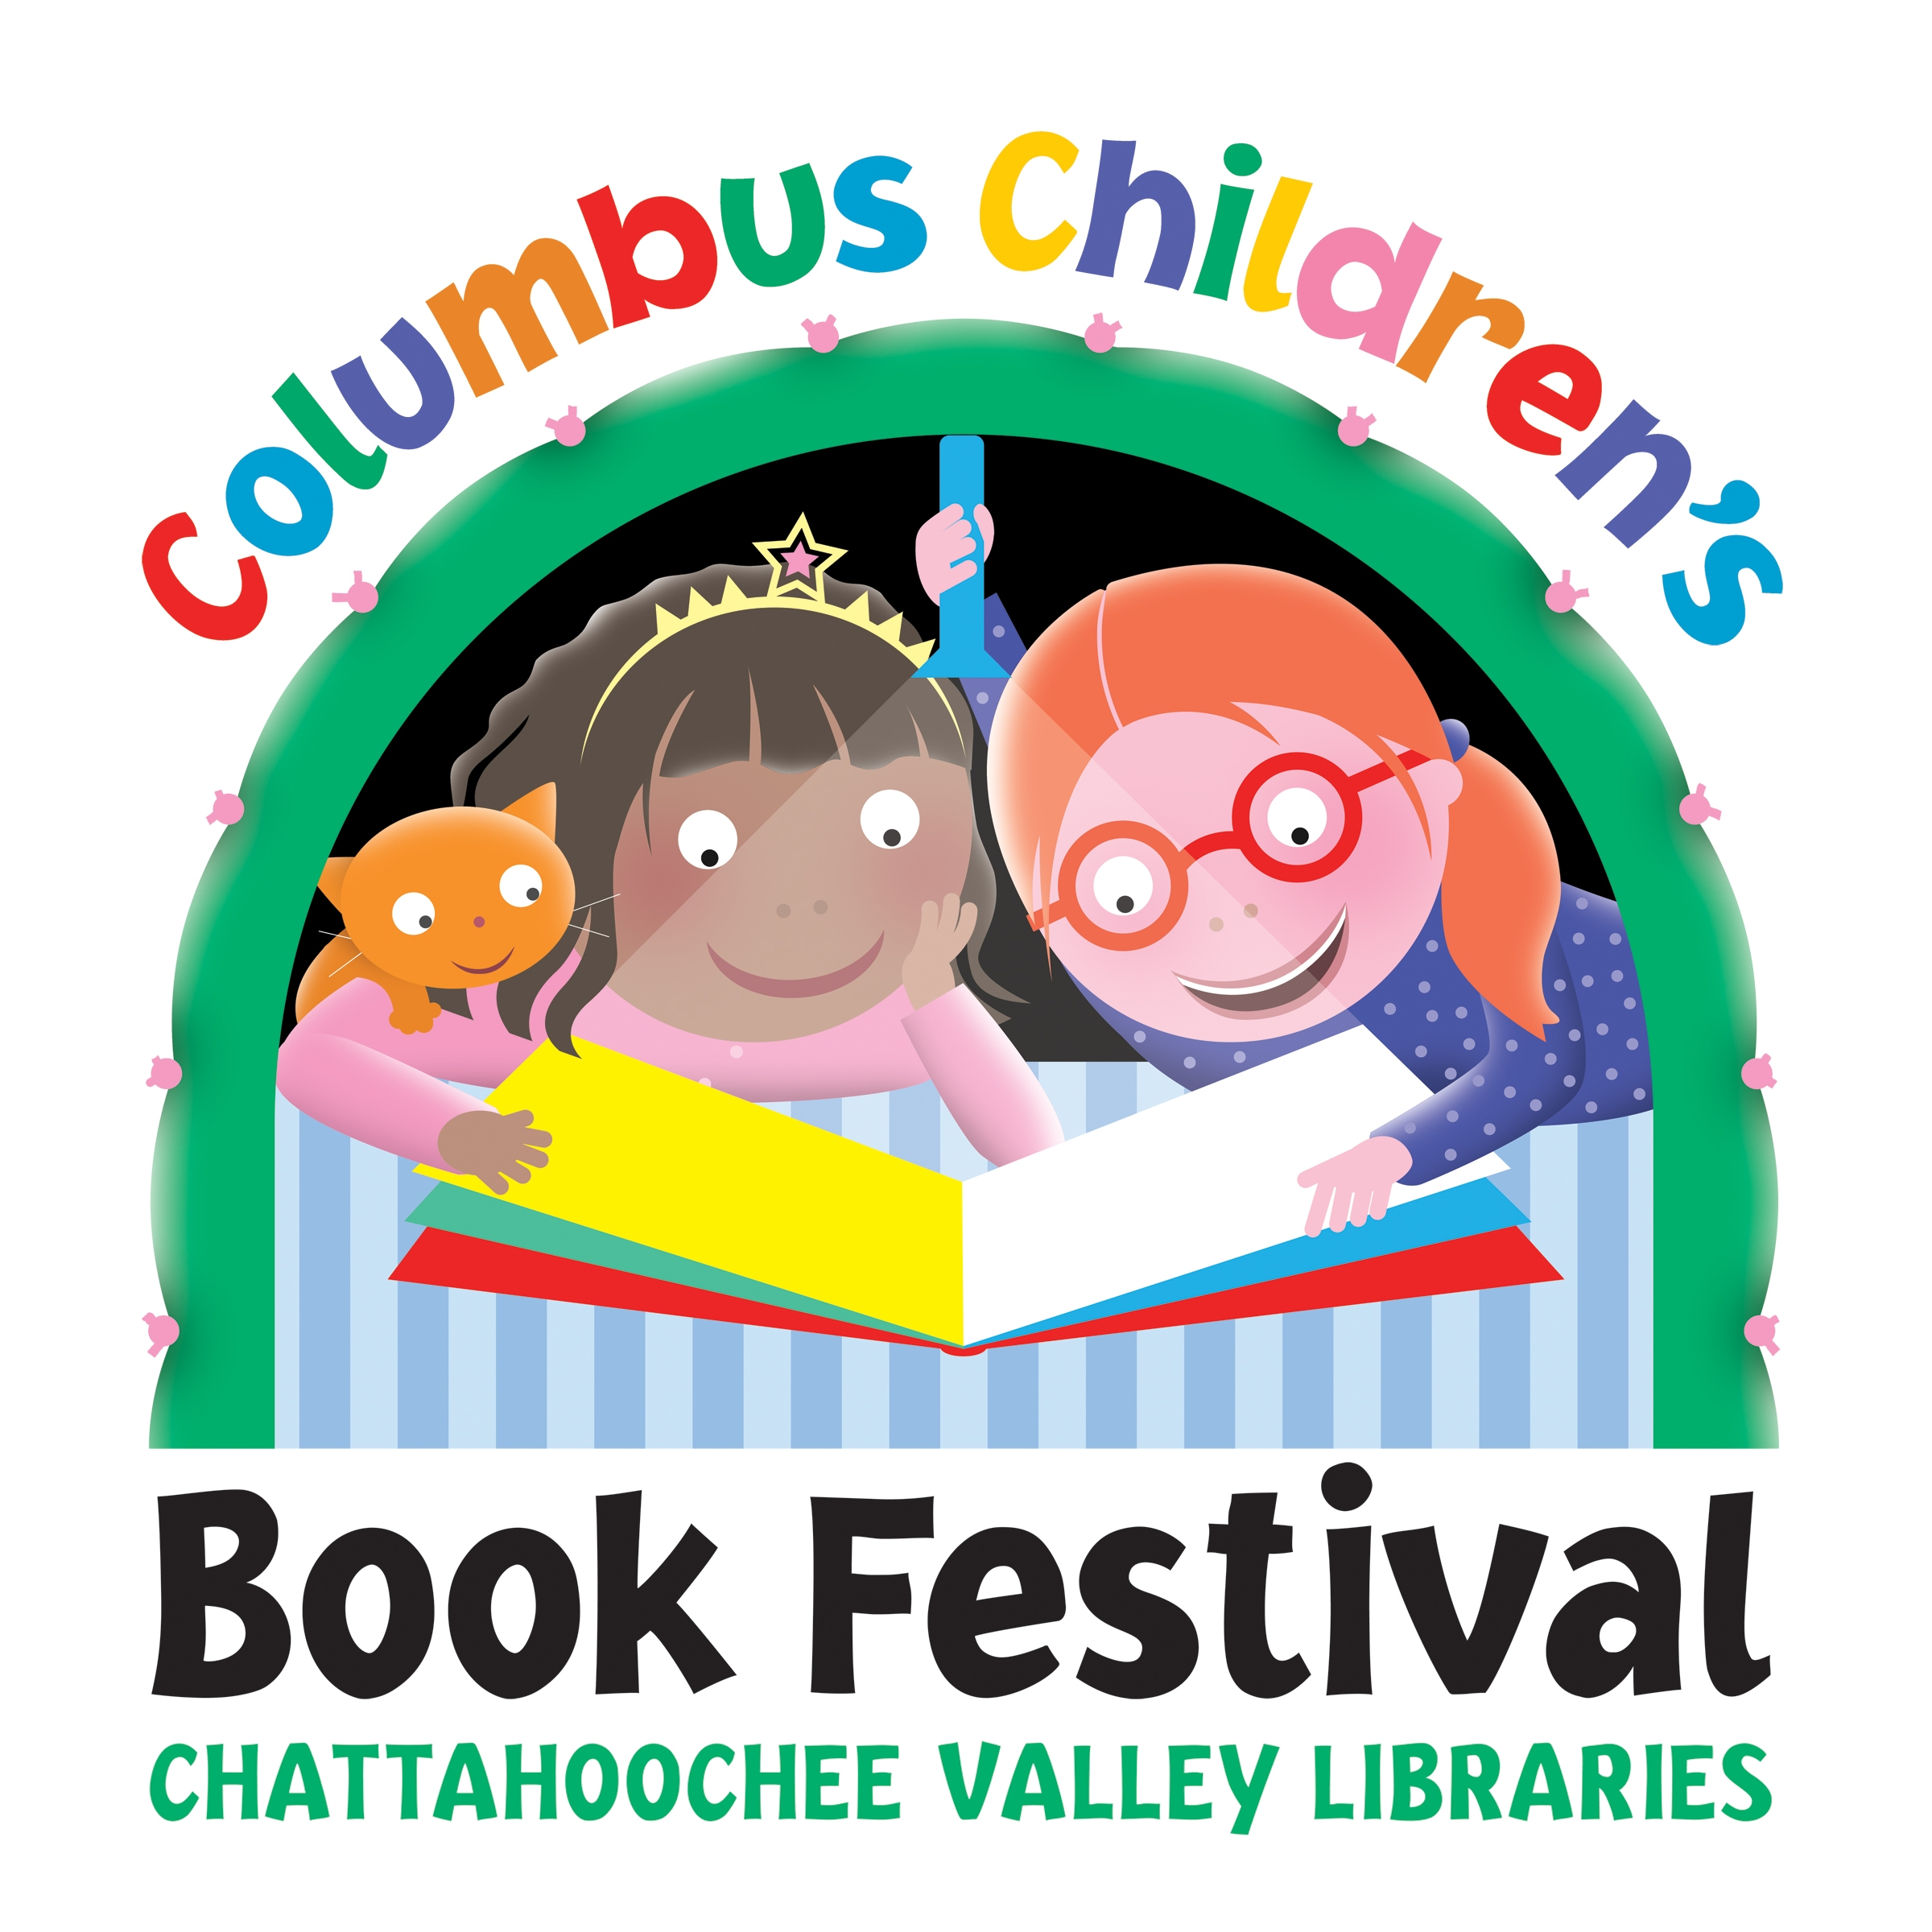 2017 Columbus Children's Book Festival